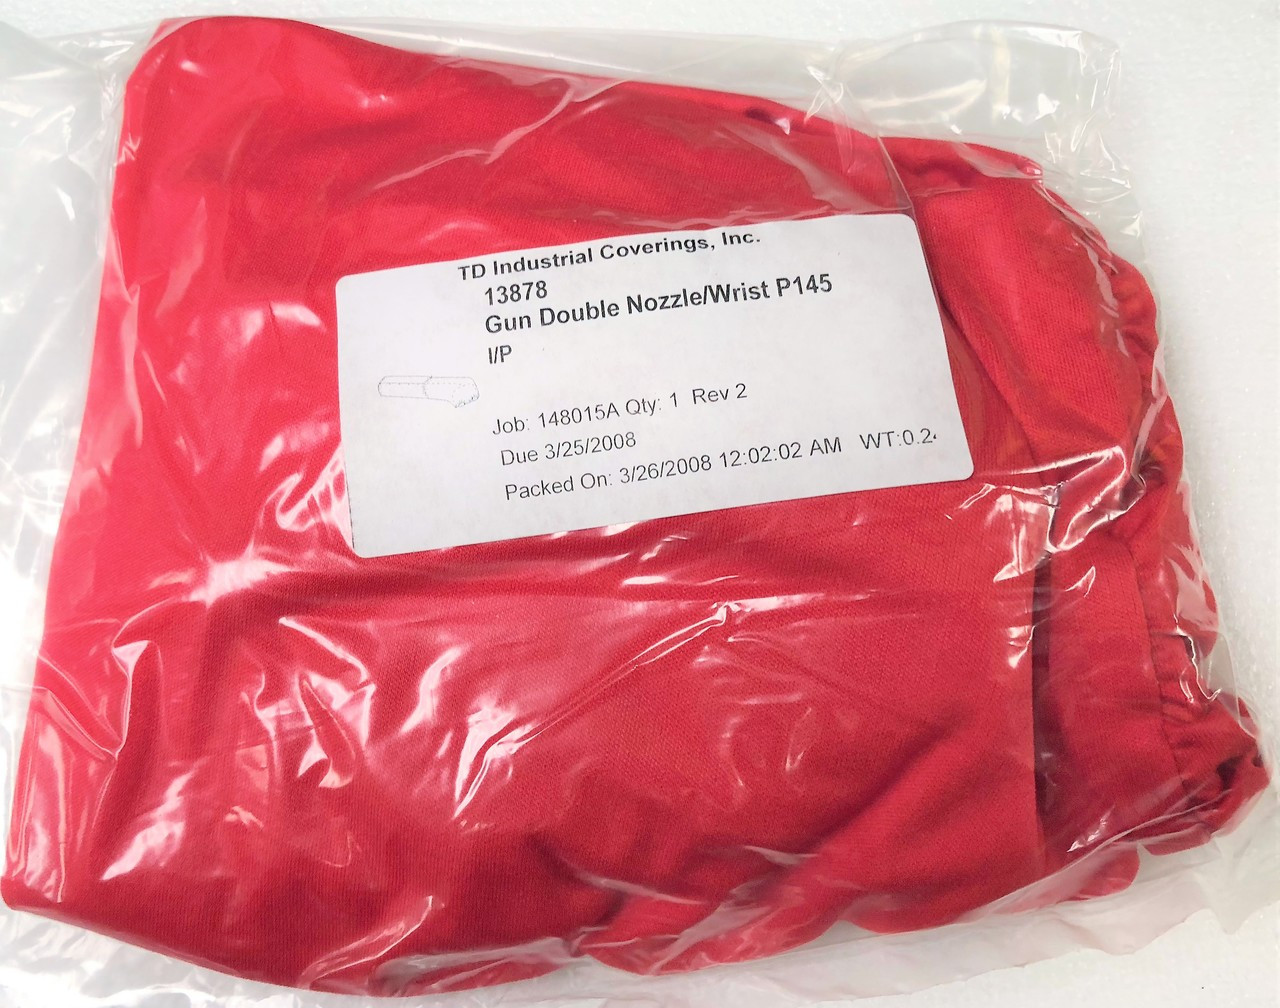 TD Industrial Coverings 13878 I/P Gun Double Nozzle Wrist Cover for Fanuc  P-145